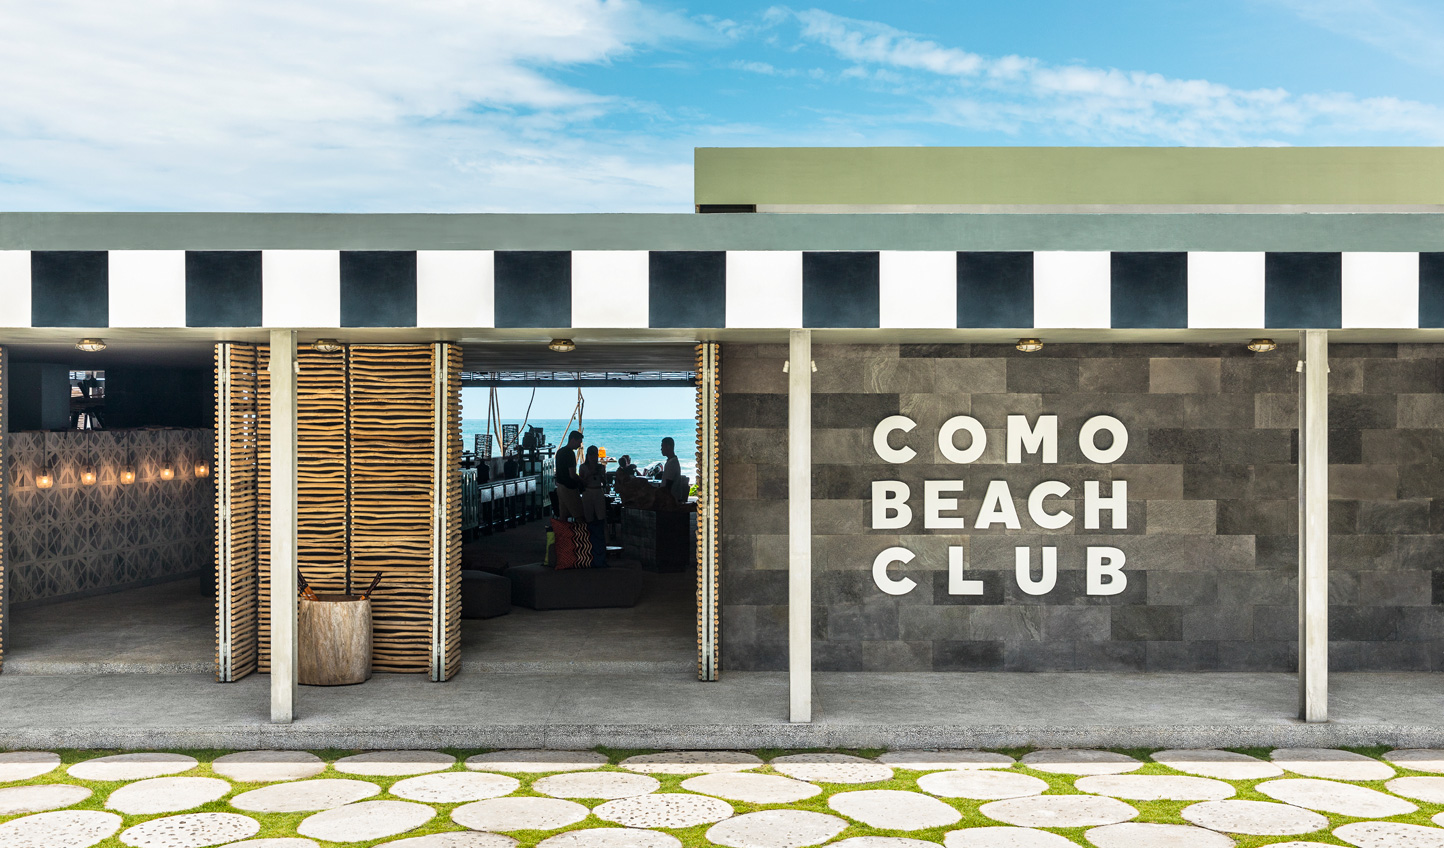 Head down to COMO Beach Club and relax by the rolling waves